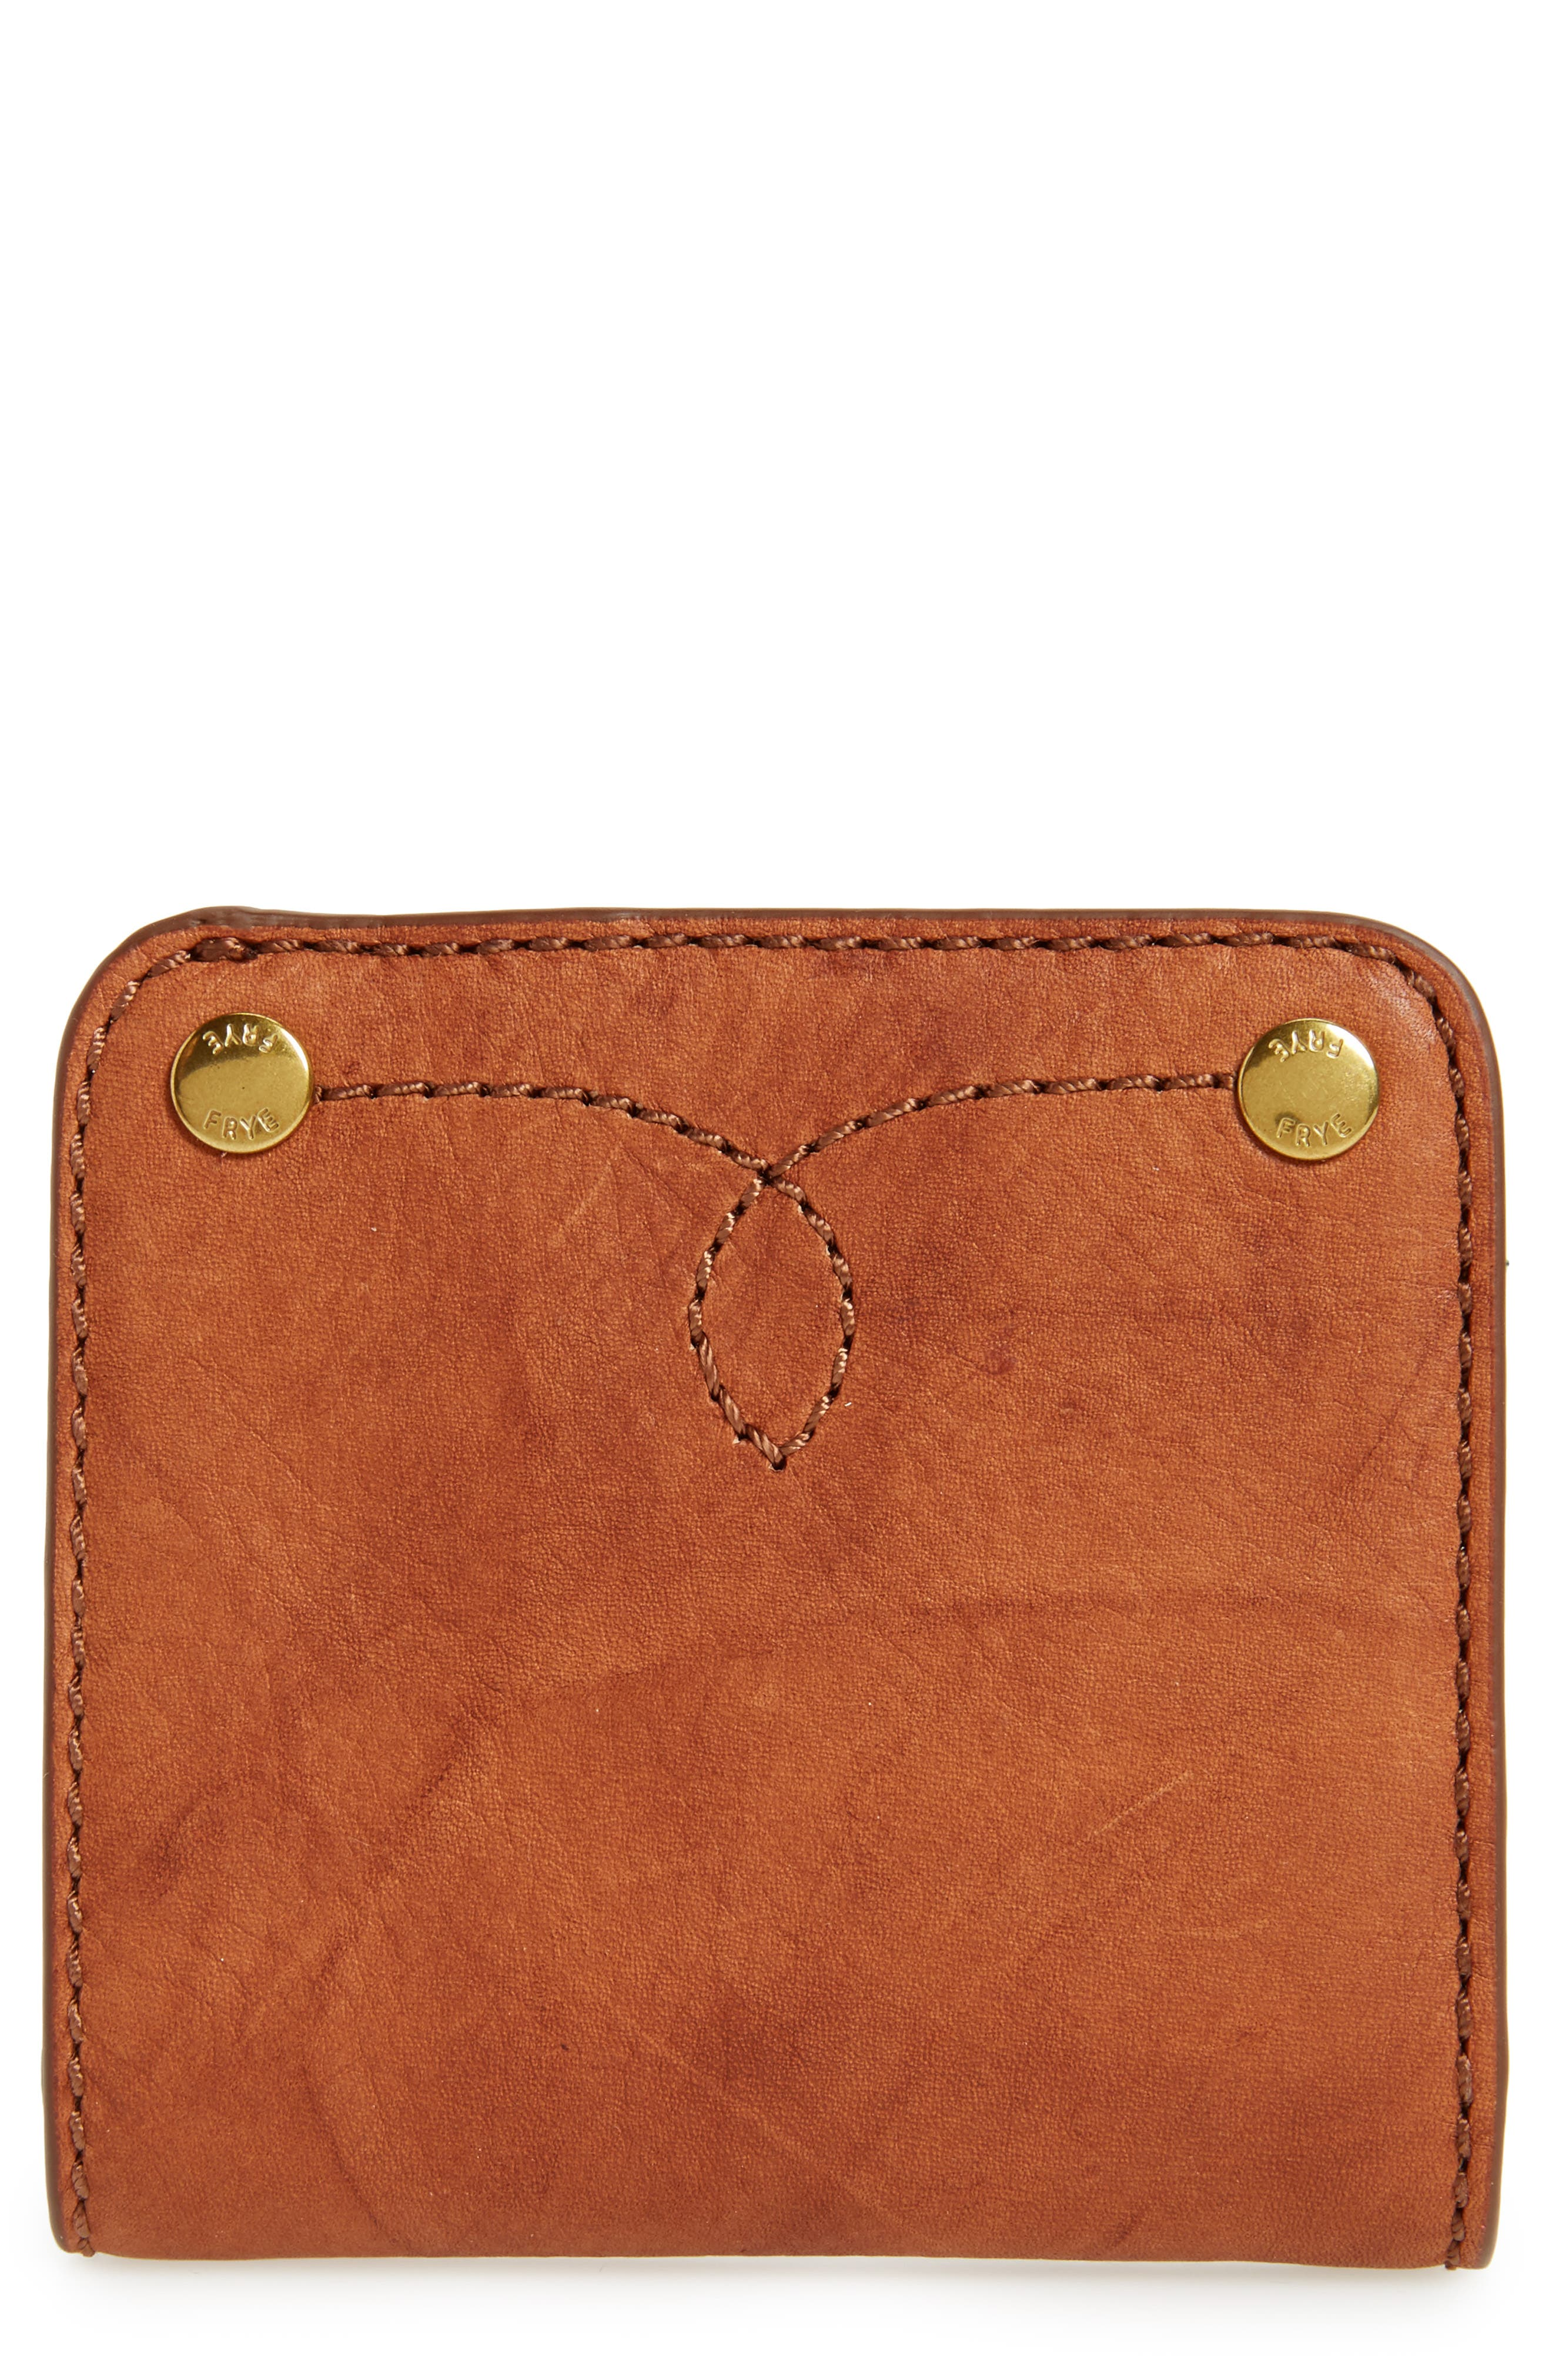 Small Campus Rivet Leather Wallet,                         Main,                         color, Saddle